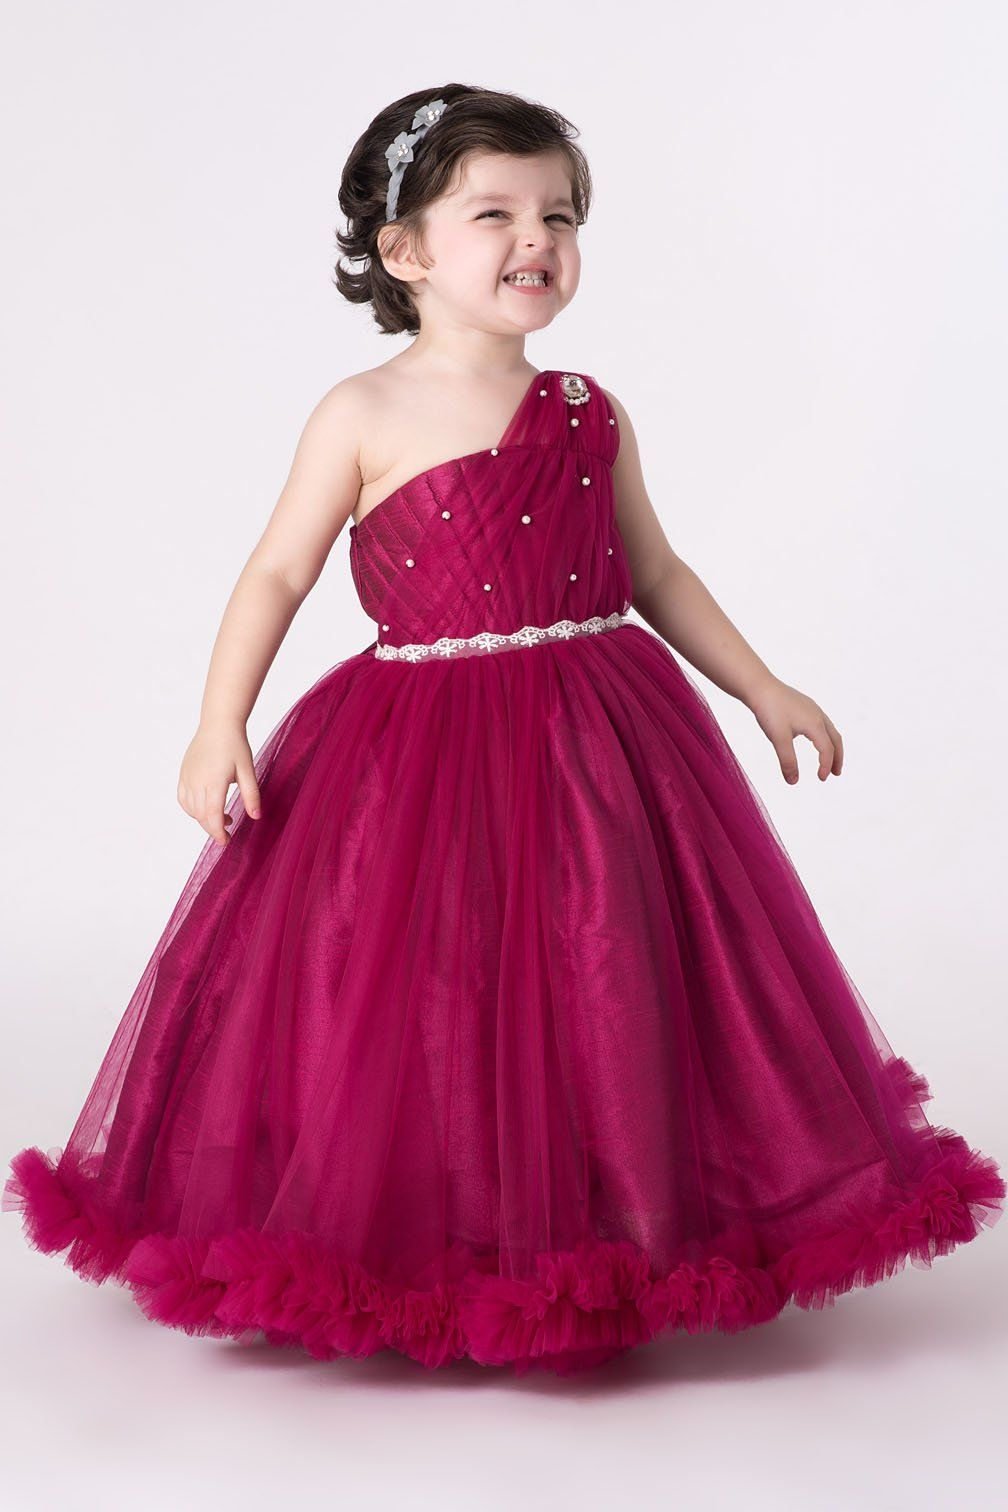 dc9692ae1 Dainty #pink #gown is a great pick for your little #princess to adorn at  any #party occasion.